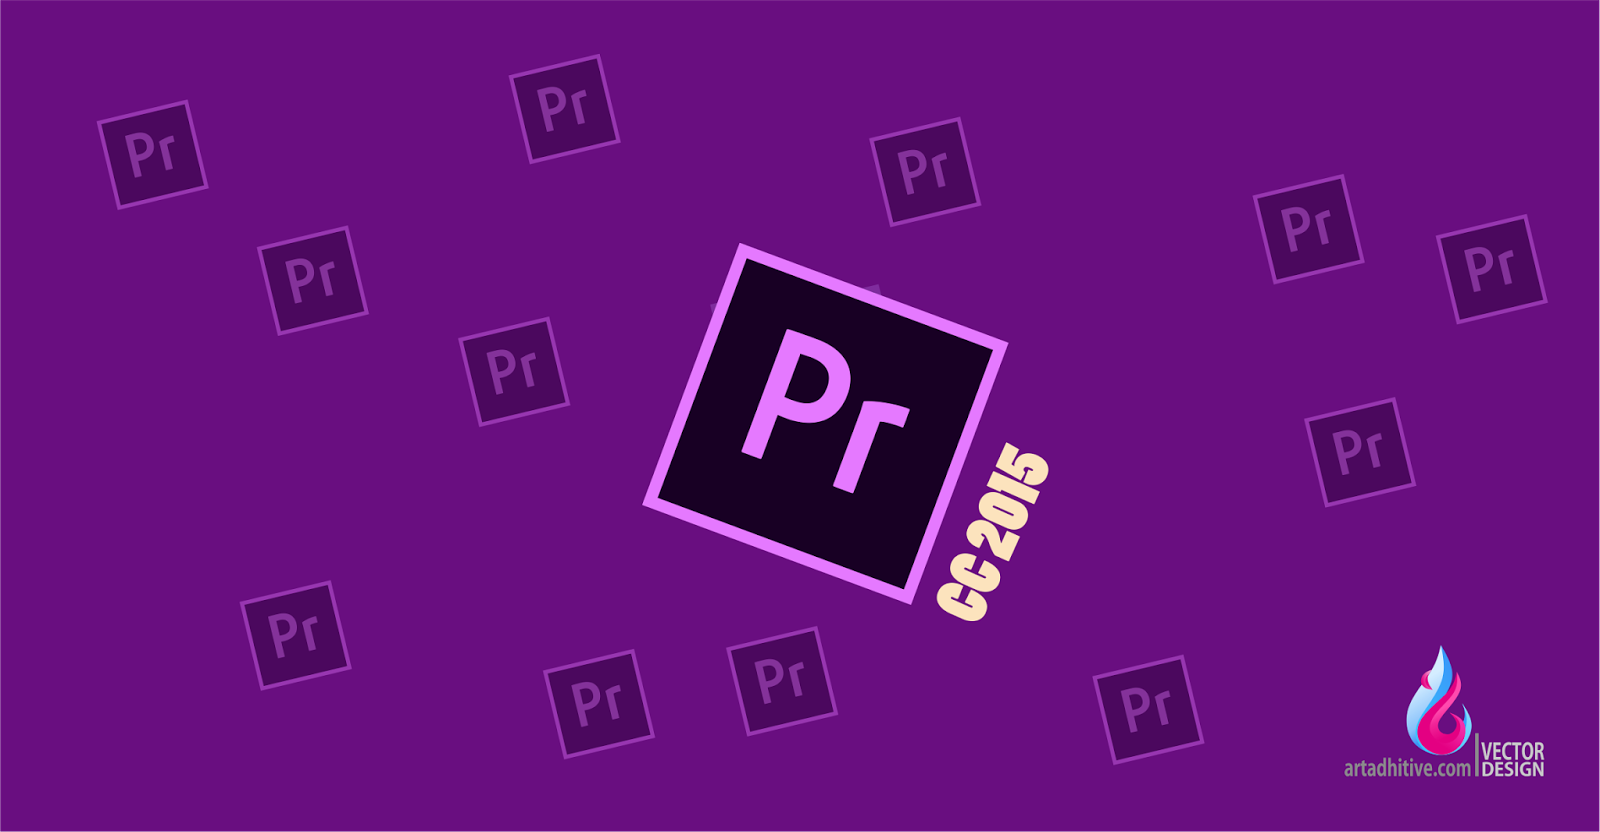 Download Adobe Premier Pro cc 2015